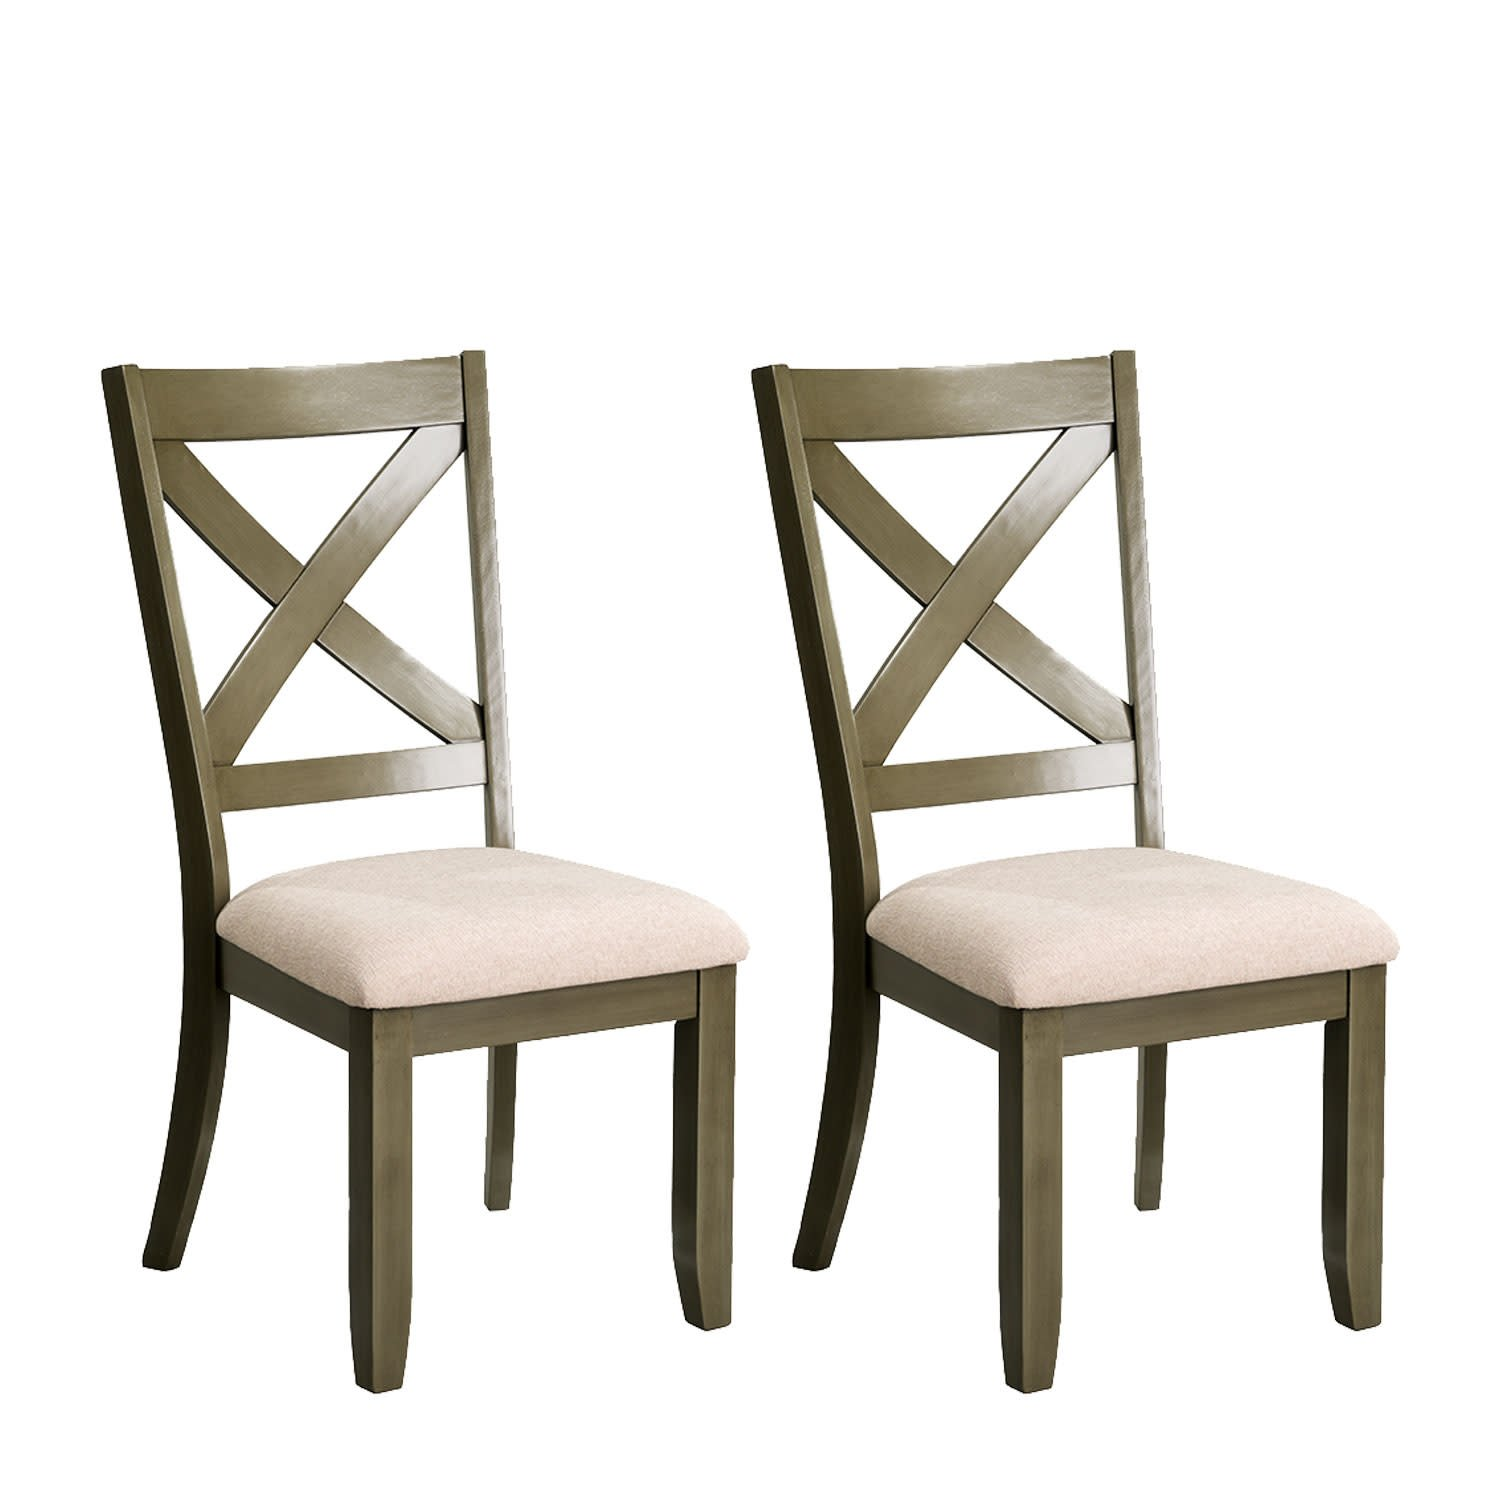 Standard Furniture Omaha 2-Pack Side Chairs with Upholstered Seat, Grey by Standard Furniture